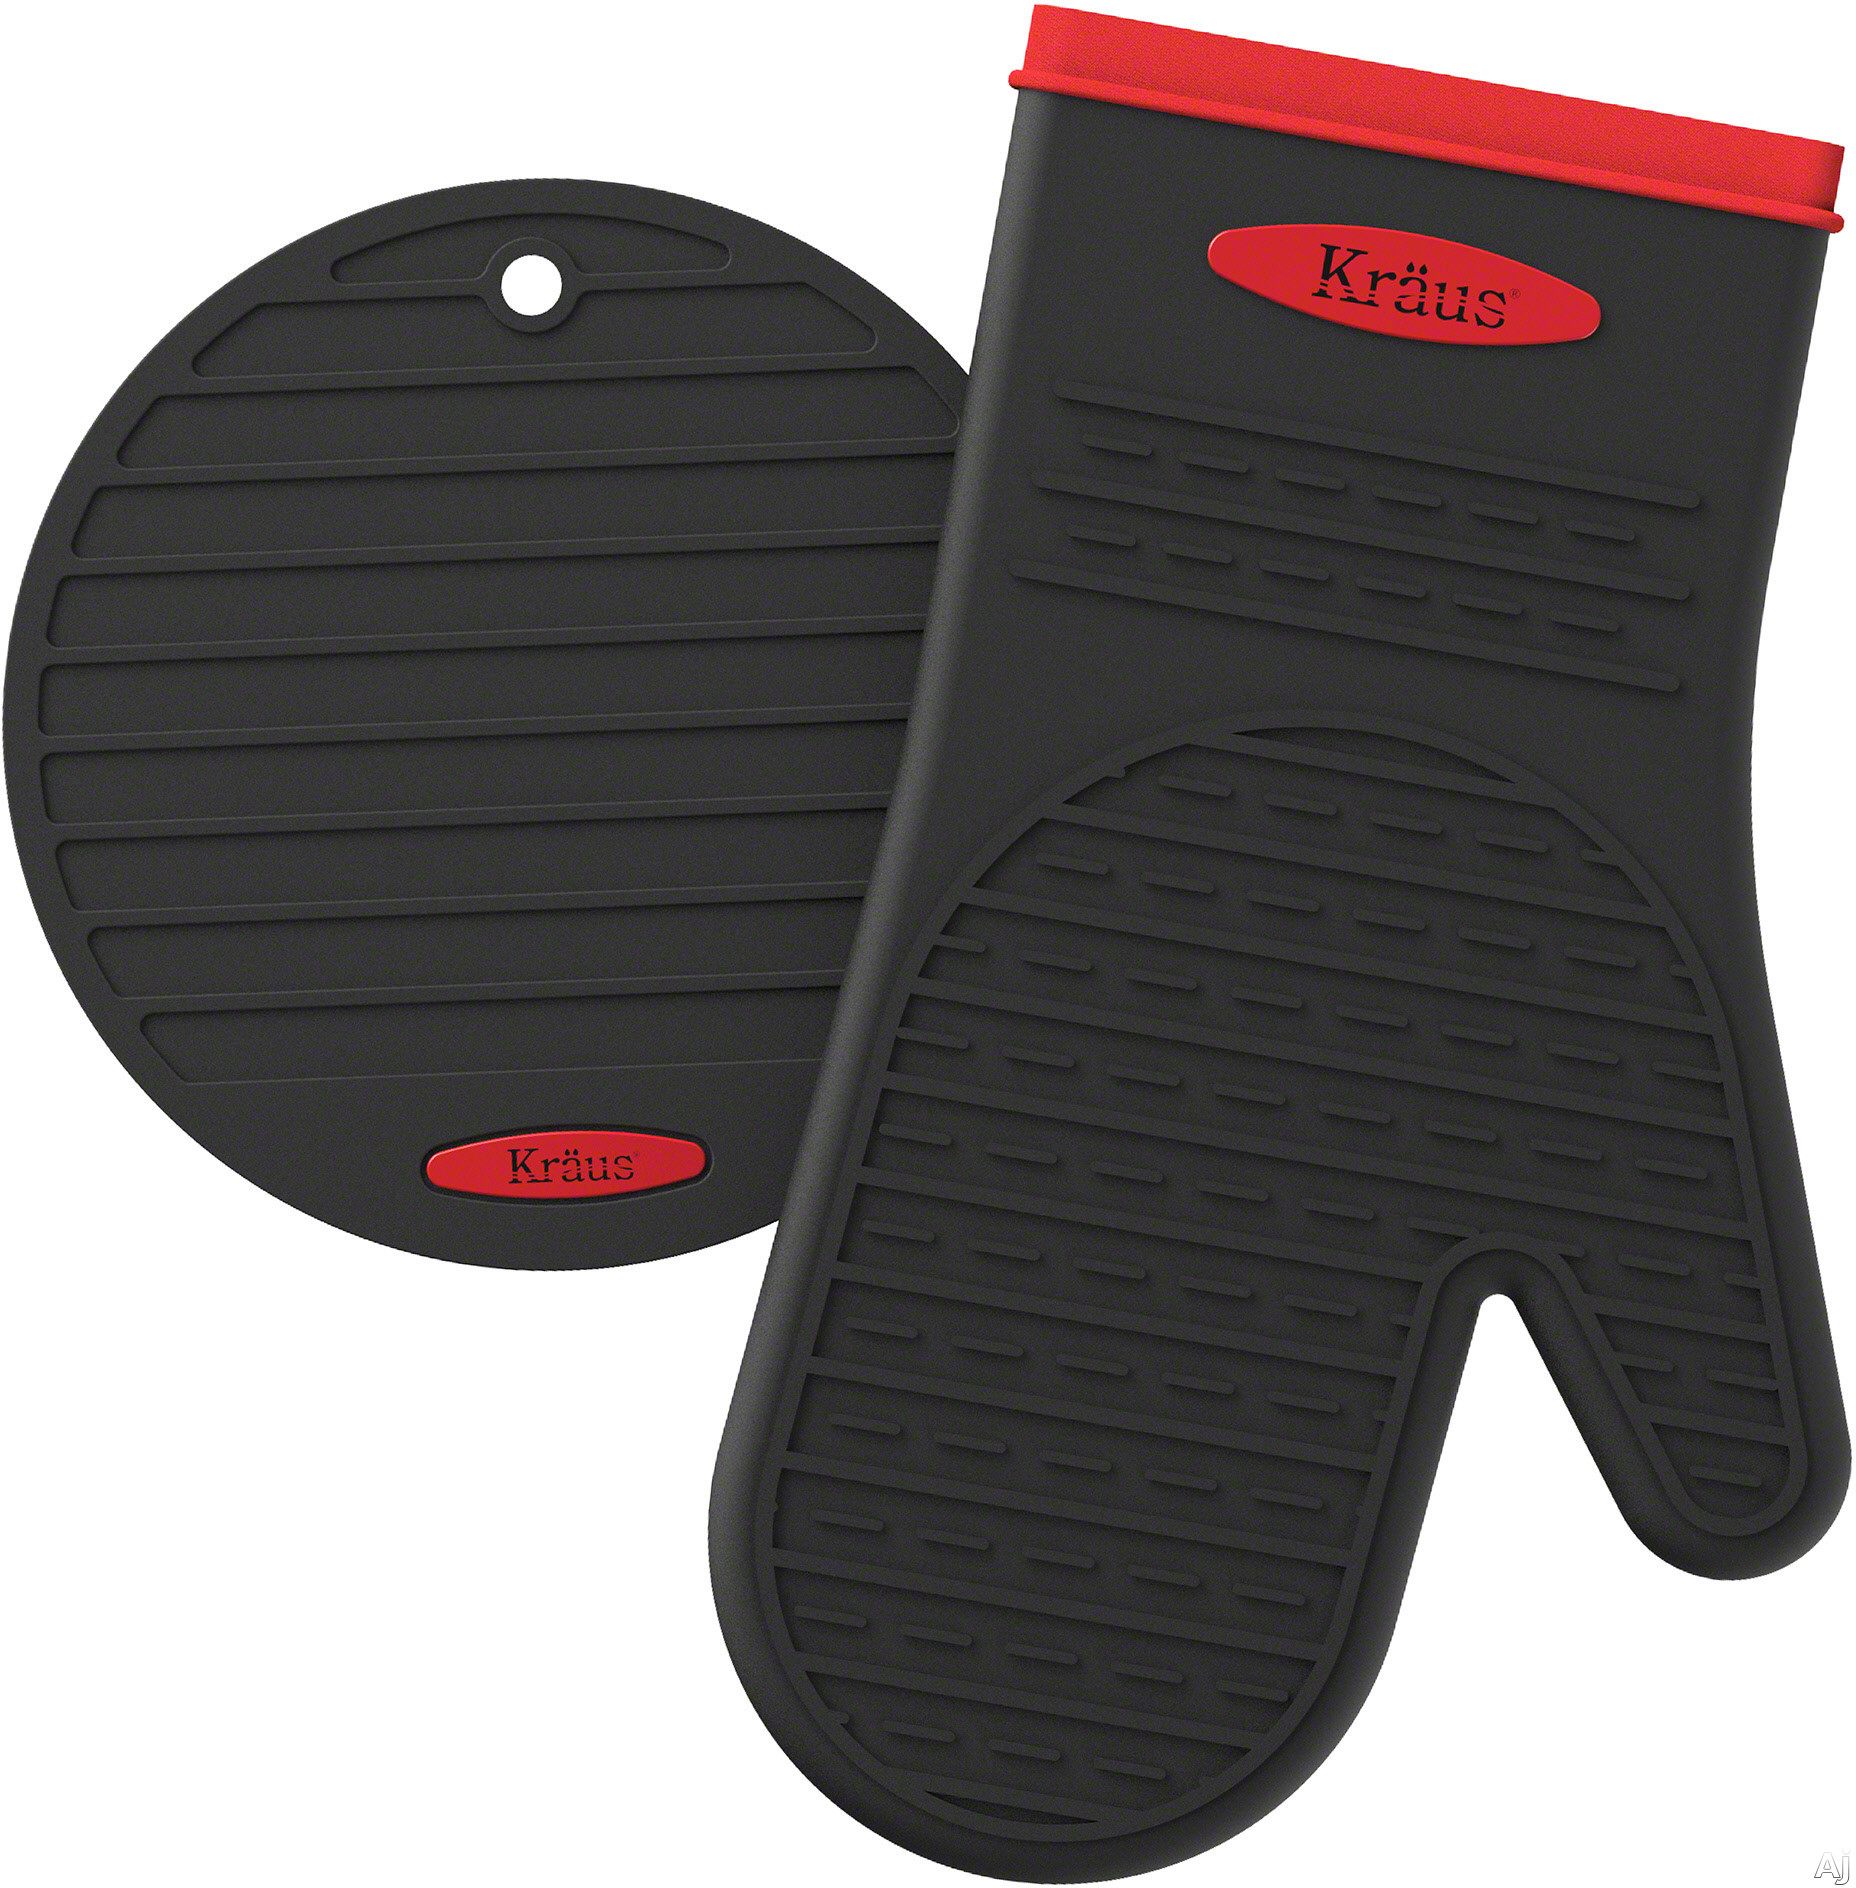 Image of Kraus KST1BKSM1B Heat-Resistant Silicone Non-Slip Oven Mitt and Trivet with Heat Resistant, Waterproof and Multifunctional